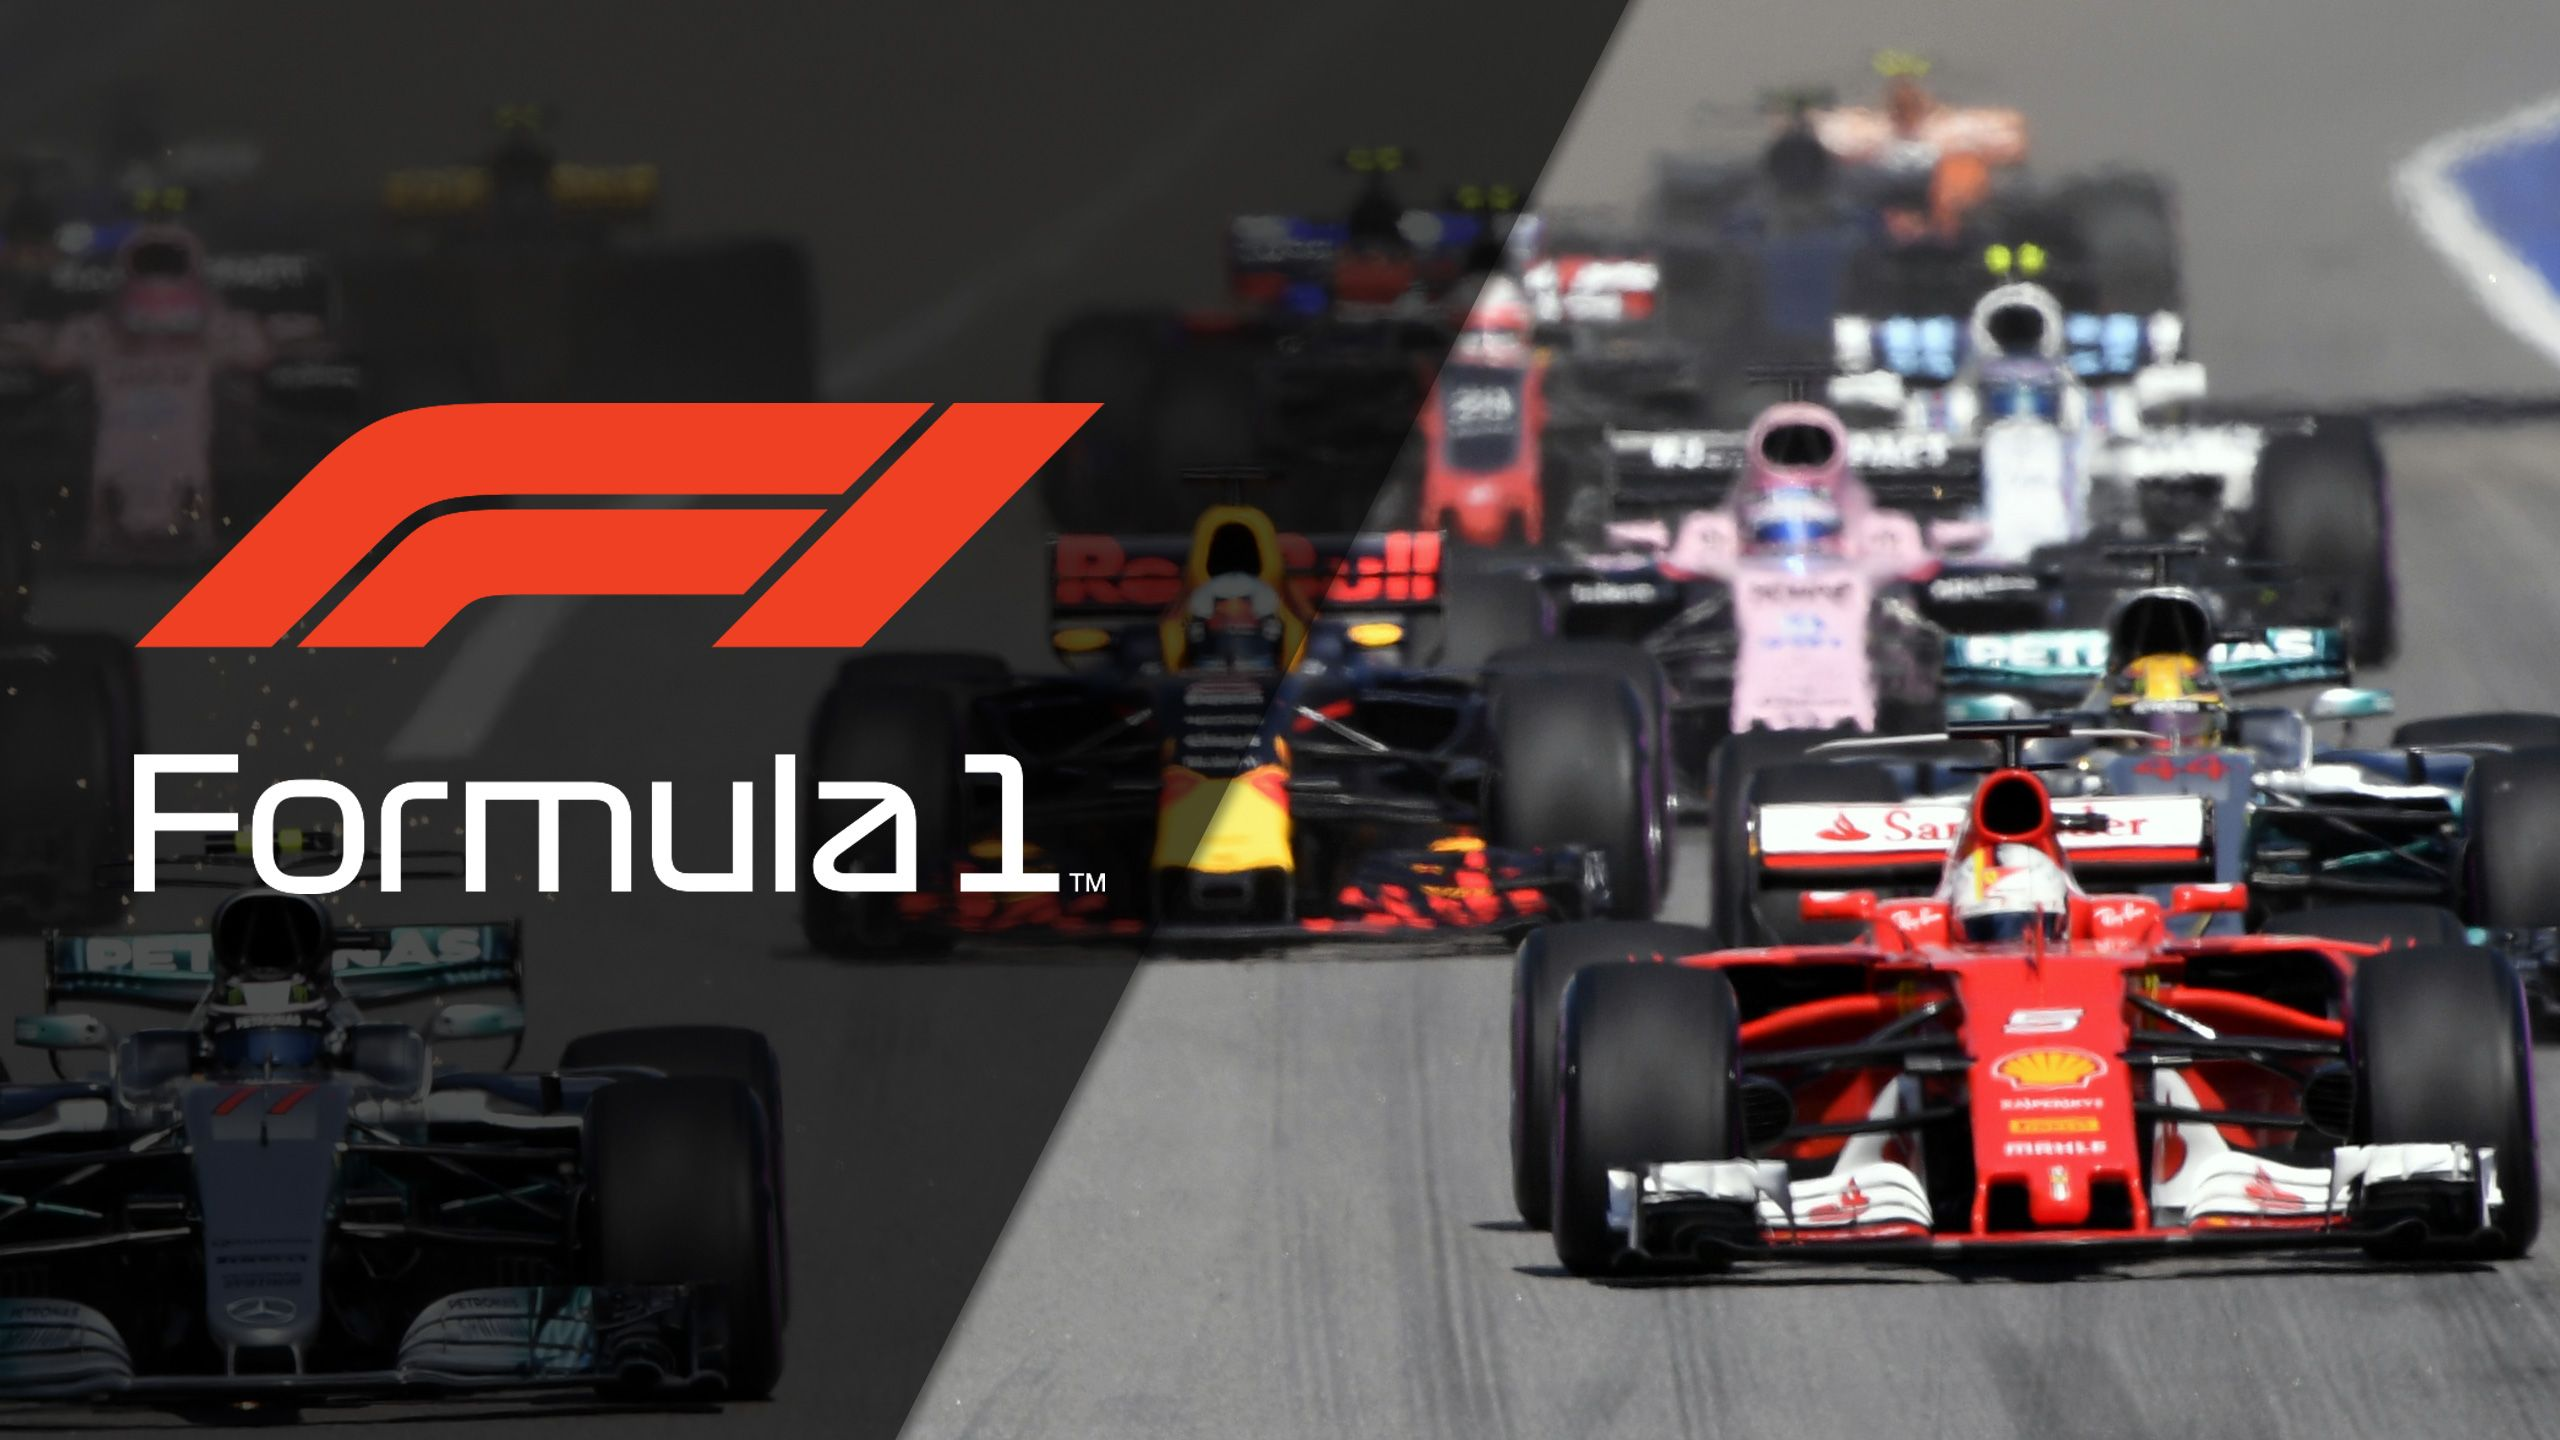 Formula 1 Spanish Grand Prix coverage presented by Mothers Polish